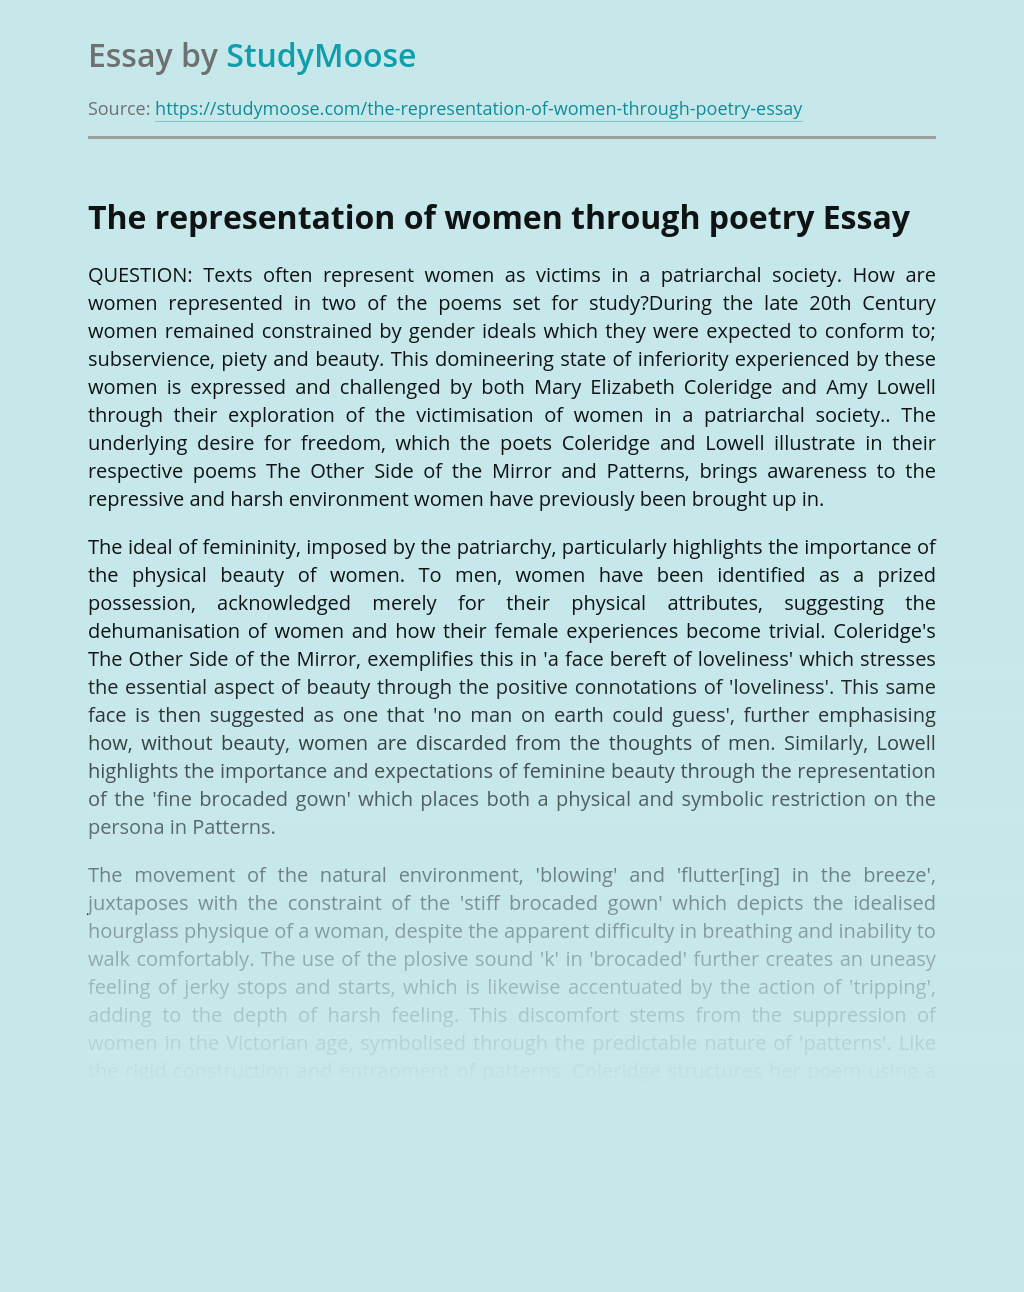 The representation of women through poetry